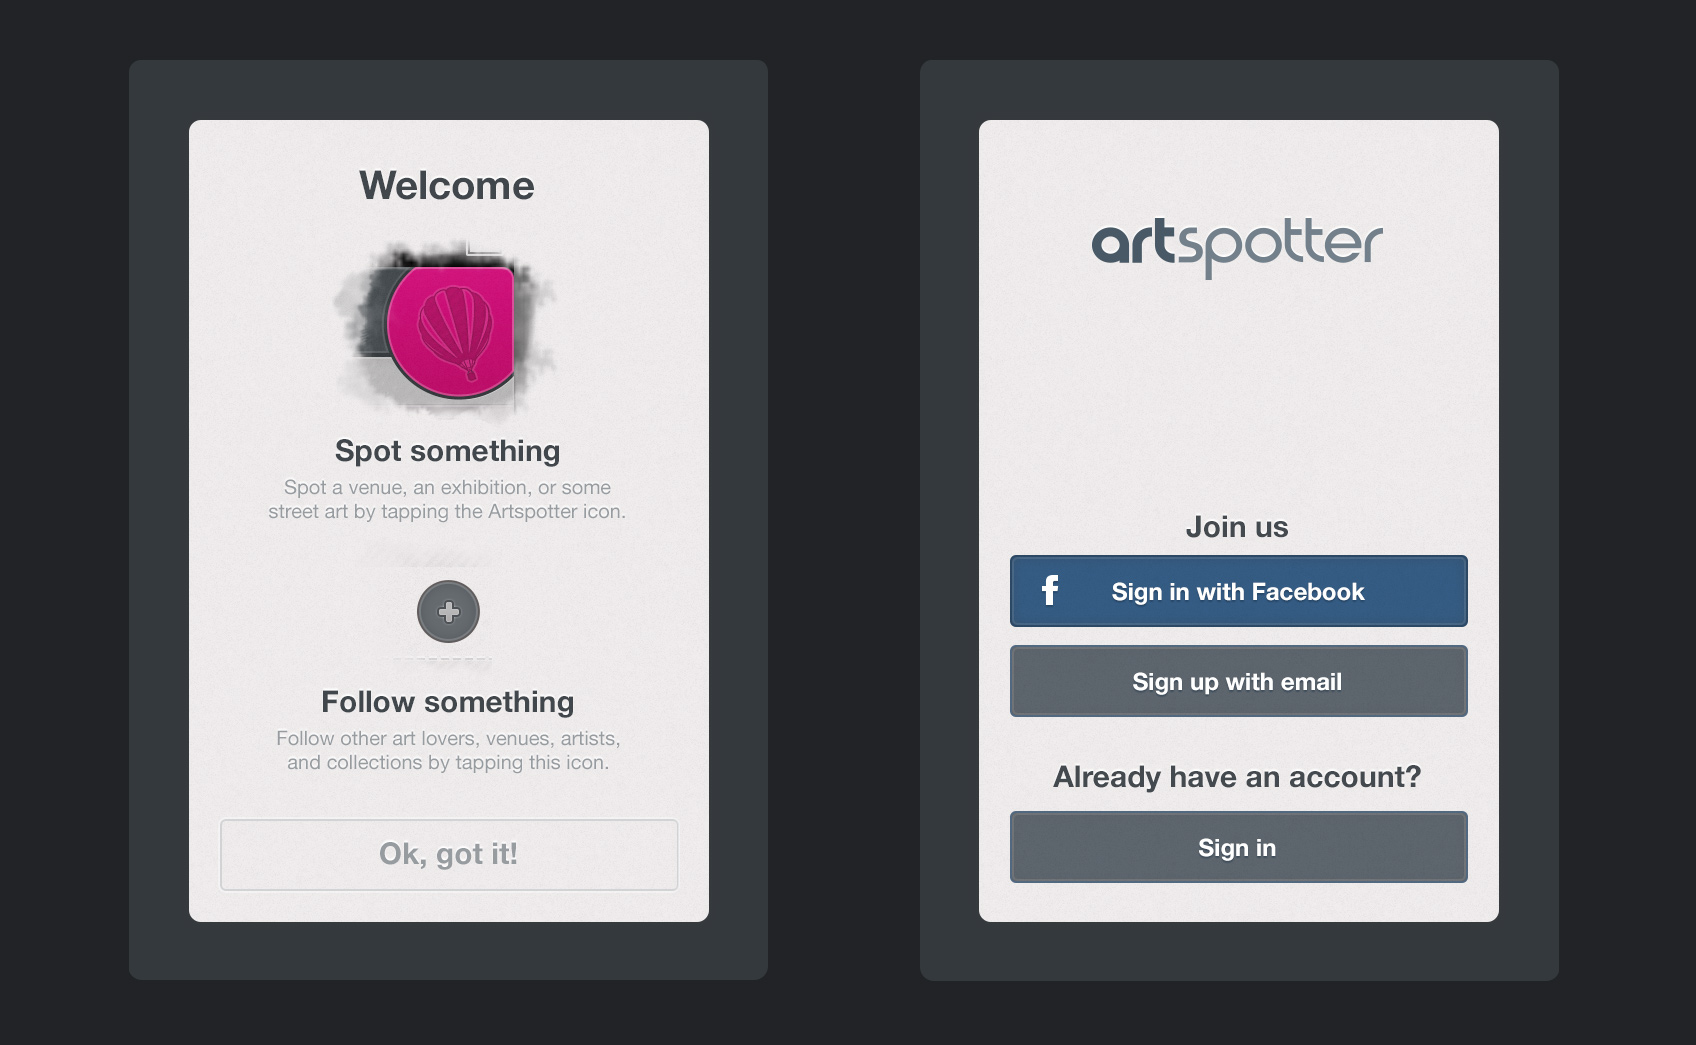 2 screens from the Artspotter iPhone app